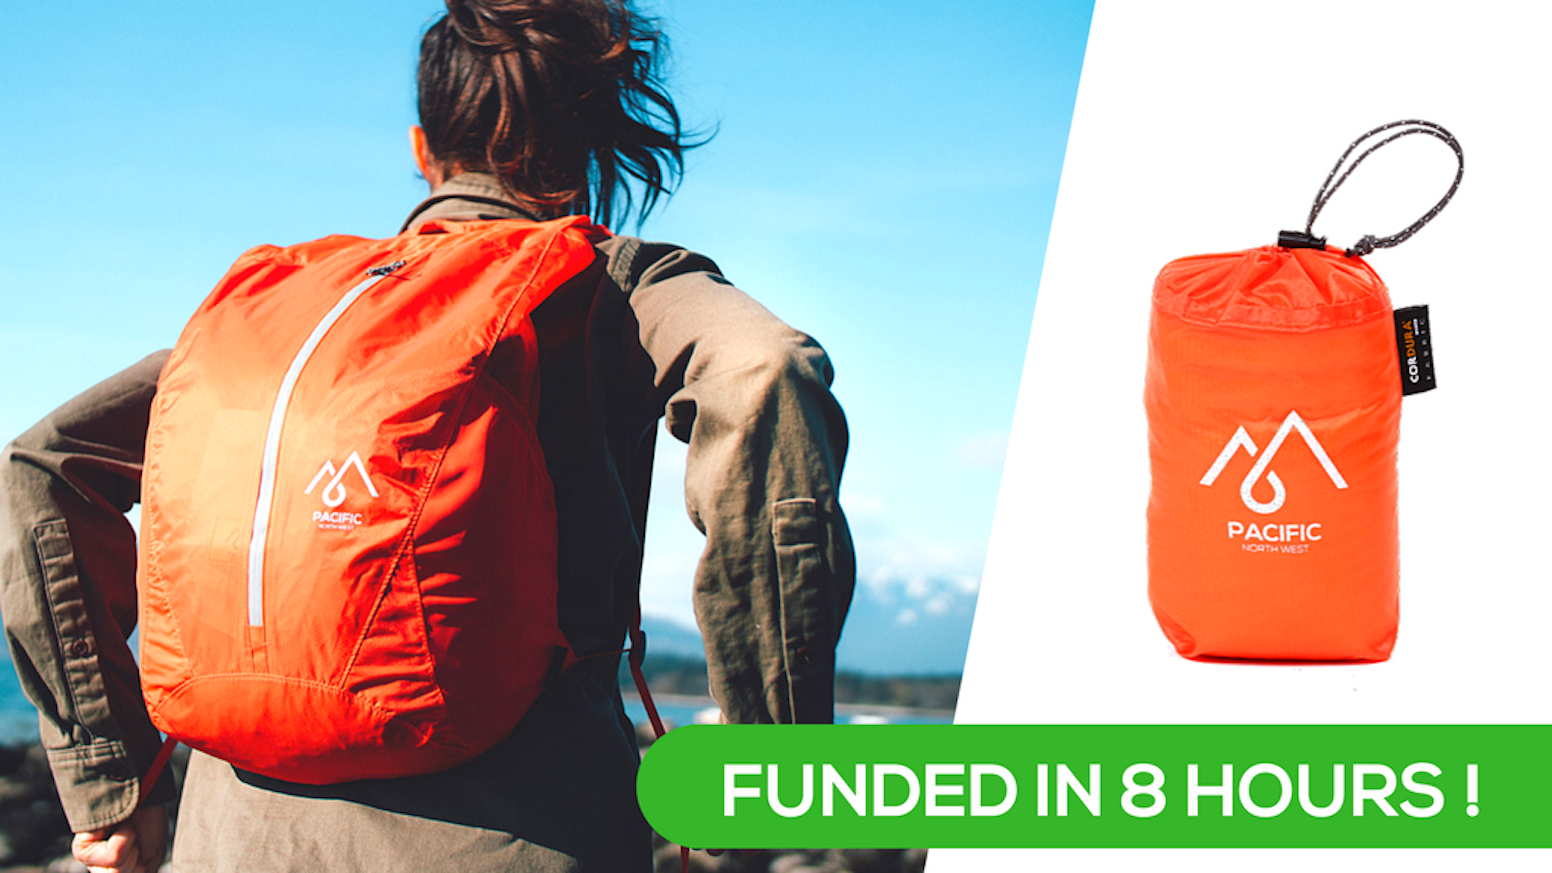 Waterproof, Packable, Lightweight and Durable - The Sea to Sky Pack by PNW  is 65c2bf5cbd